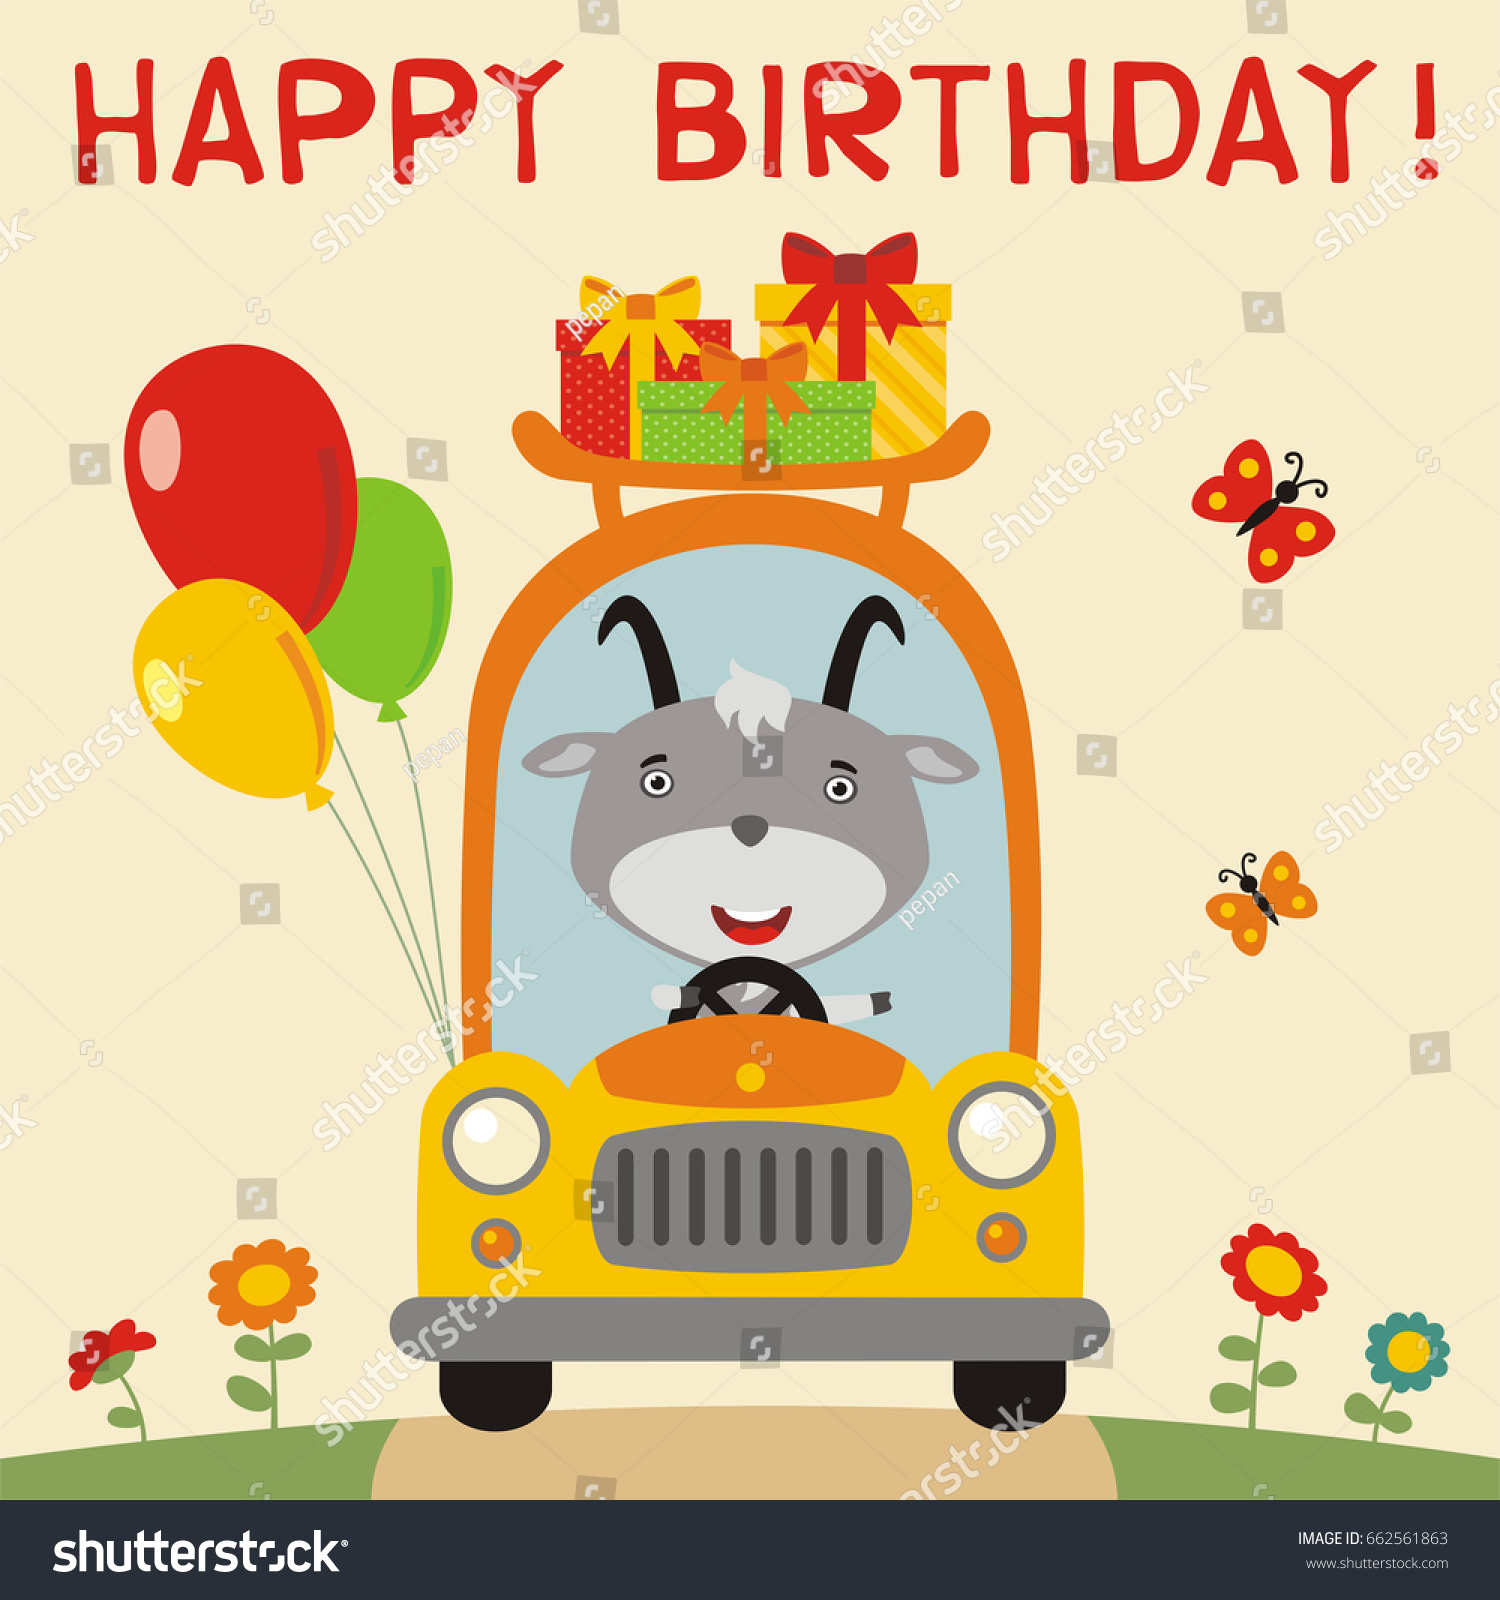 Happy Birthday Funny Goat Rides Car Vector 662561863 – Goat Birthday Card